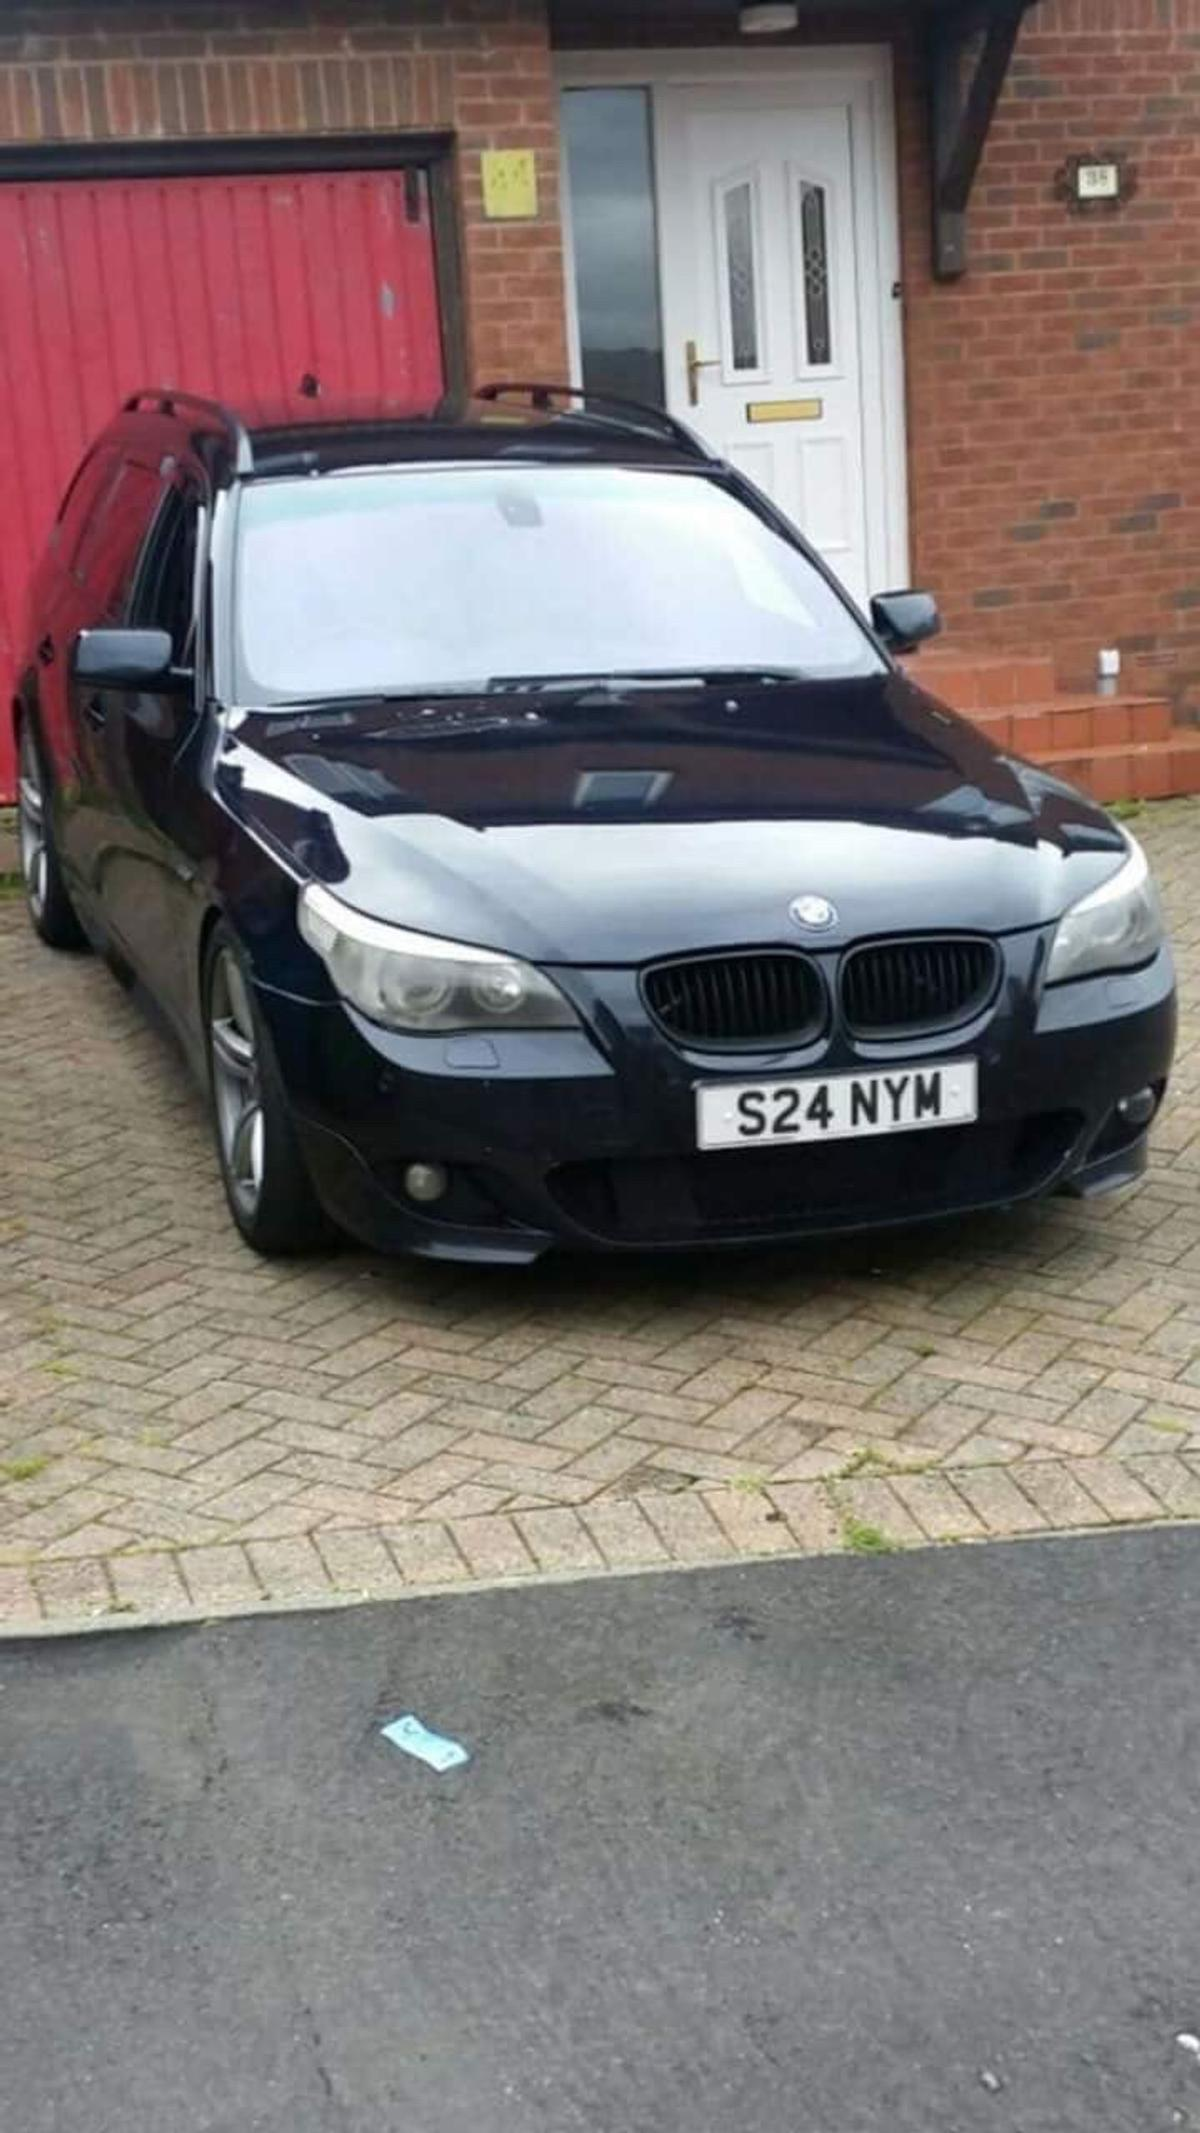 Bmw 535d 450bhp 700ftlb in BL3 Bolton for £5,000 00 for sale